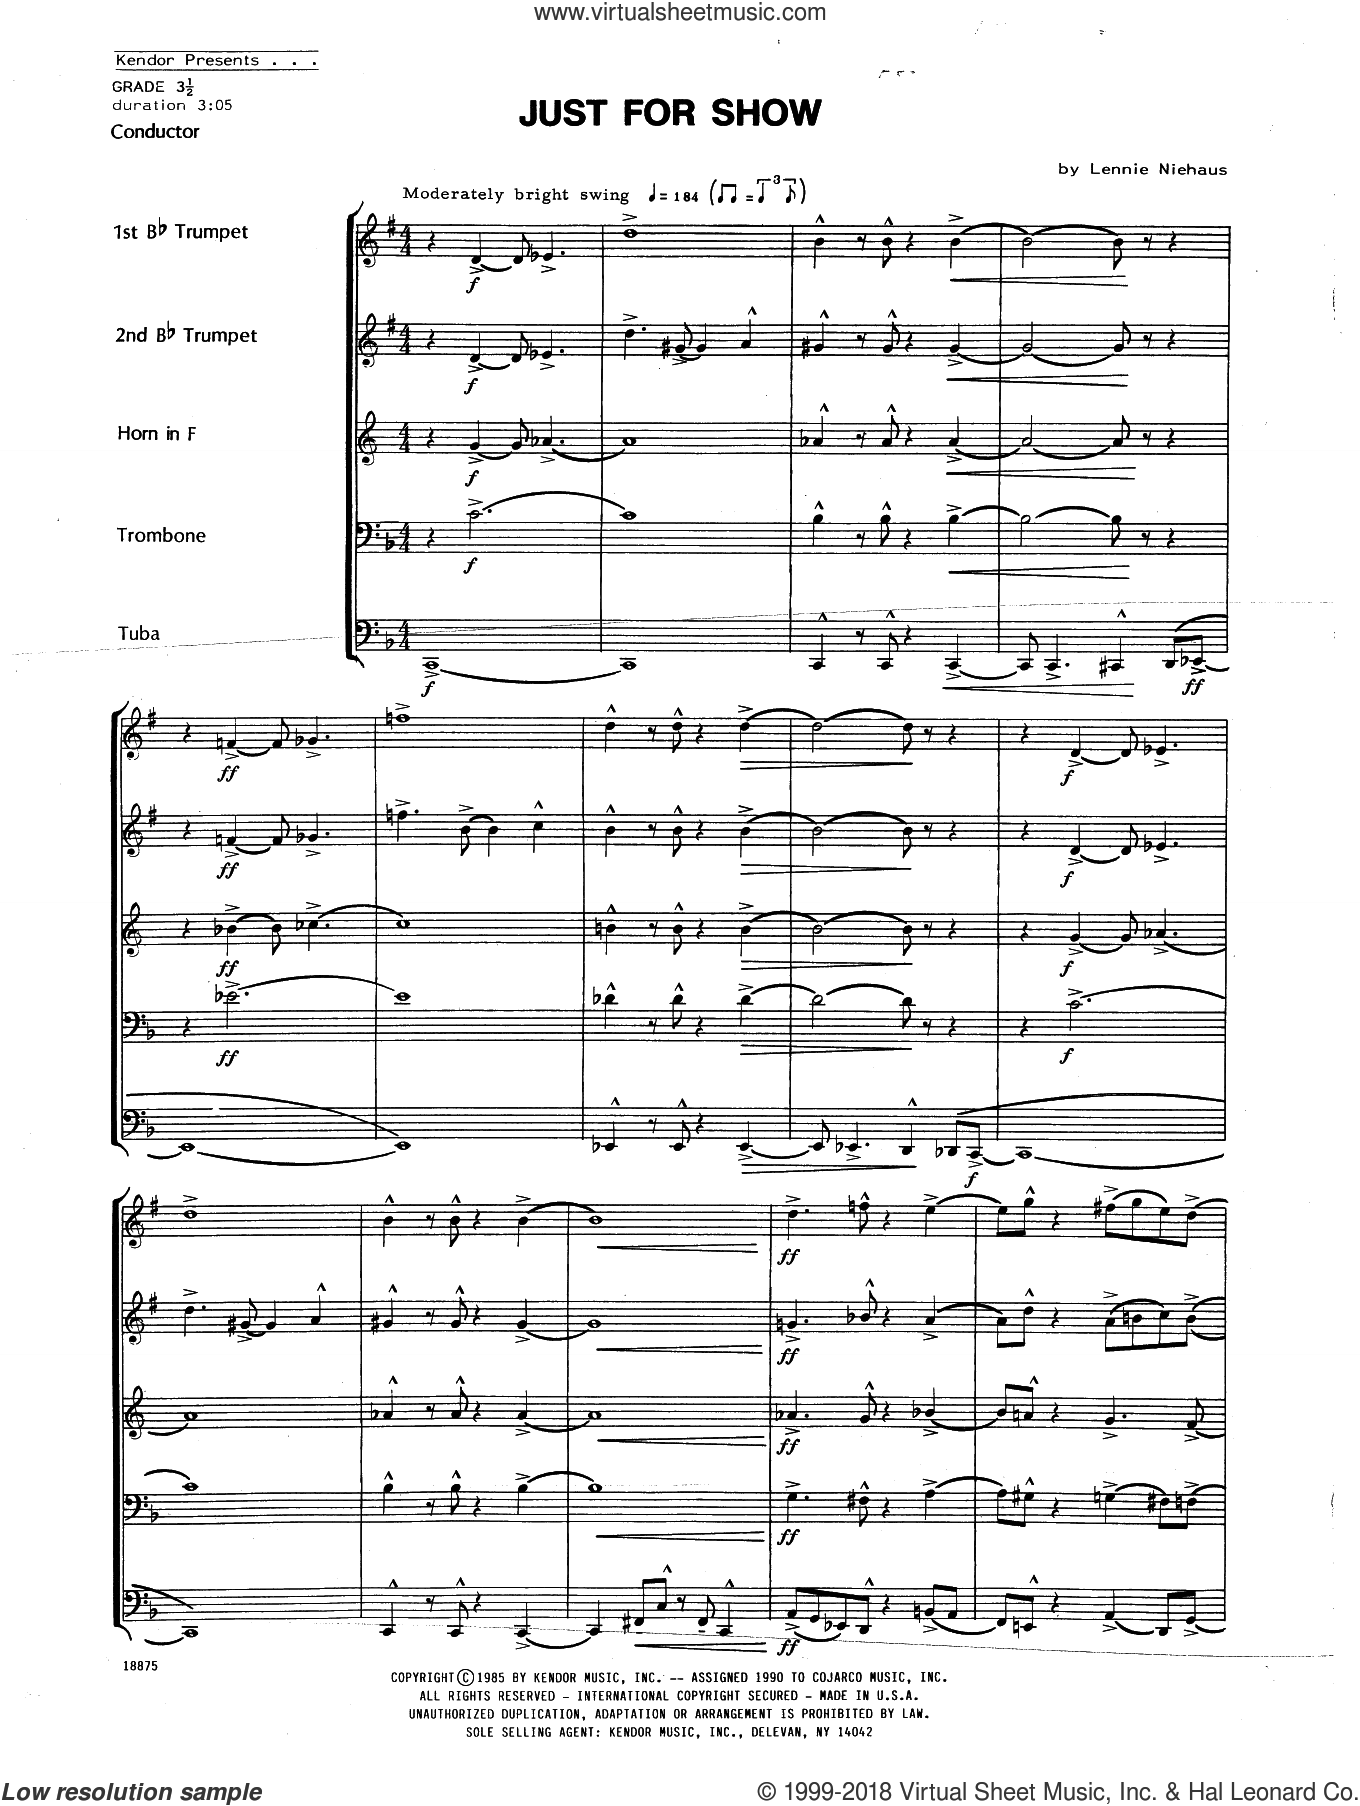 Just For Show (COMPLETE) sheet music for brass ensemble by Lennie Niehaus, intermediate brass ensemble. Score Image Preview.